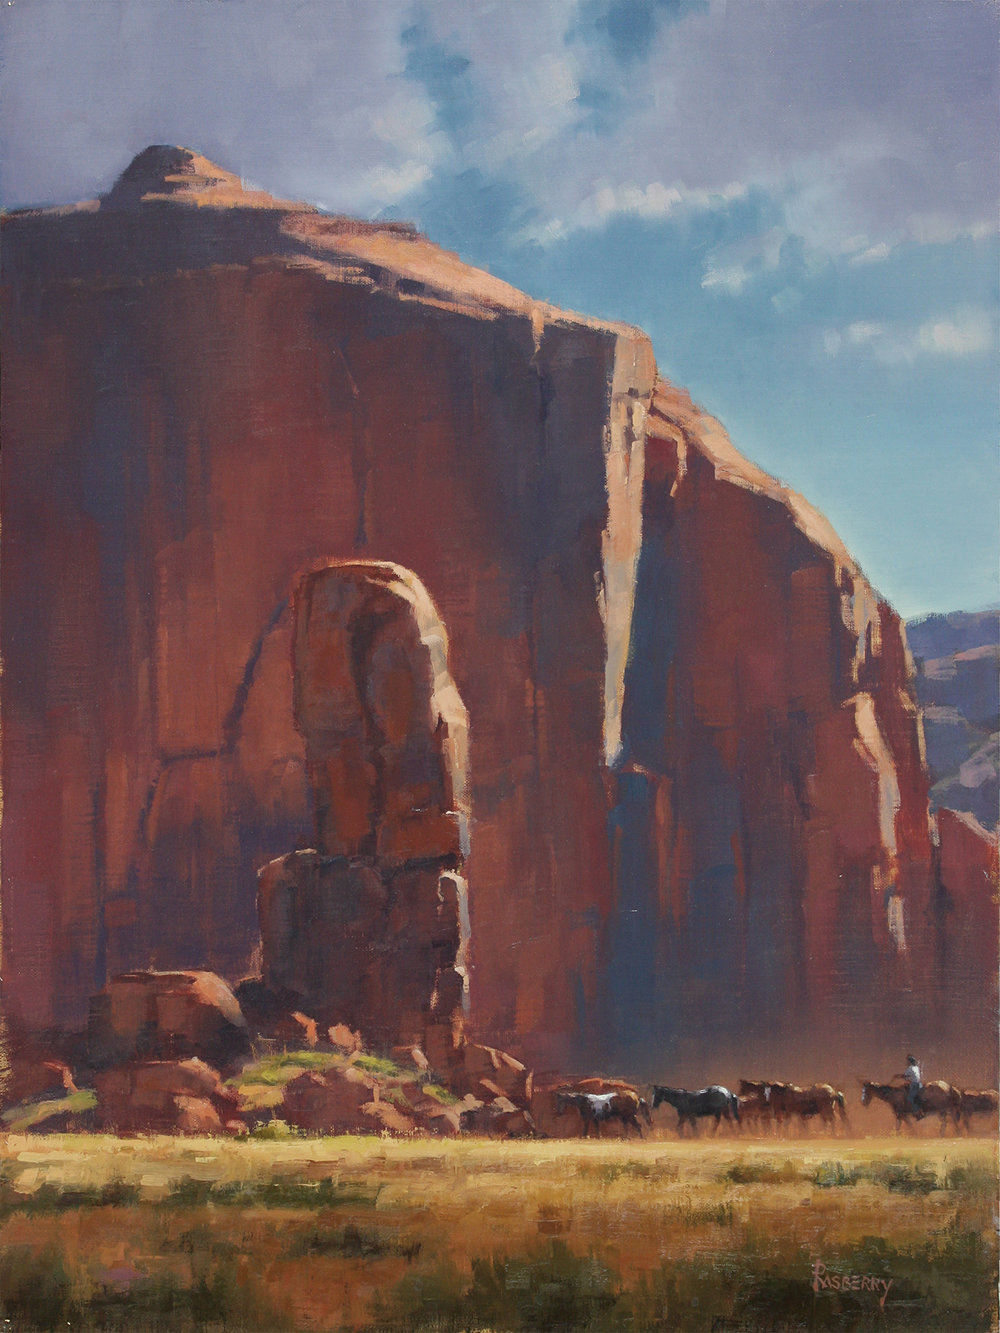 Rasberry_Red Rocks and Red Dust 18x24 2016.jpg